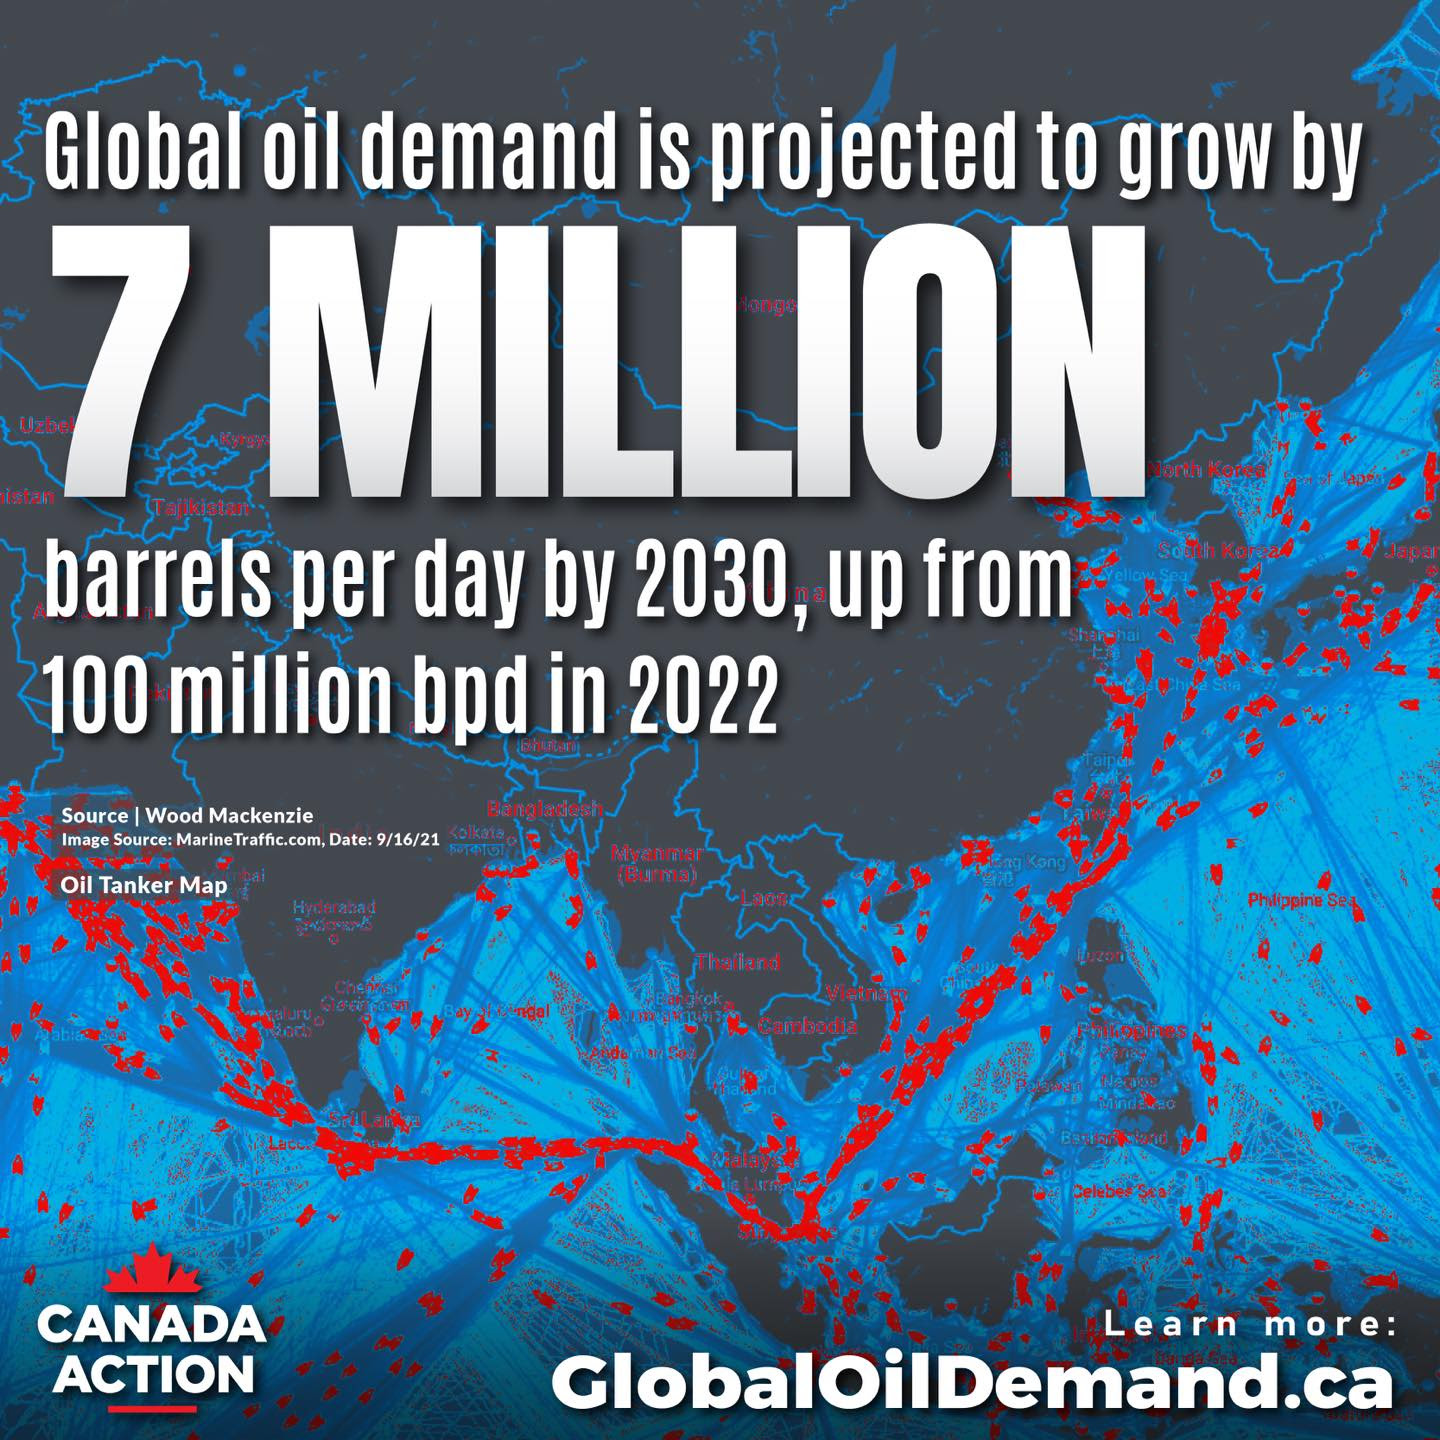 global oil and gas demand Wood Mackenzie projection 2021